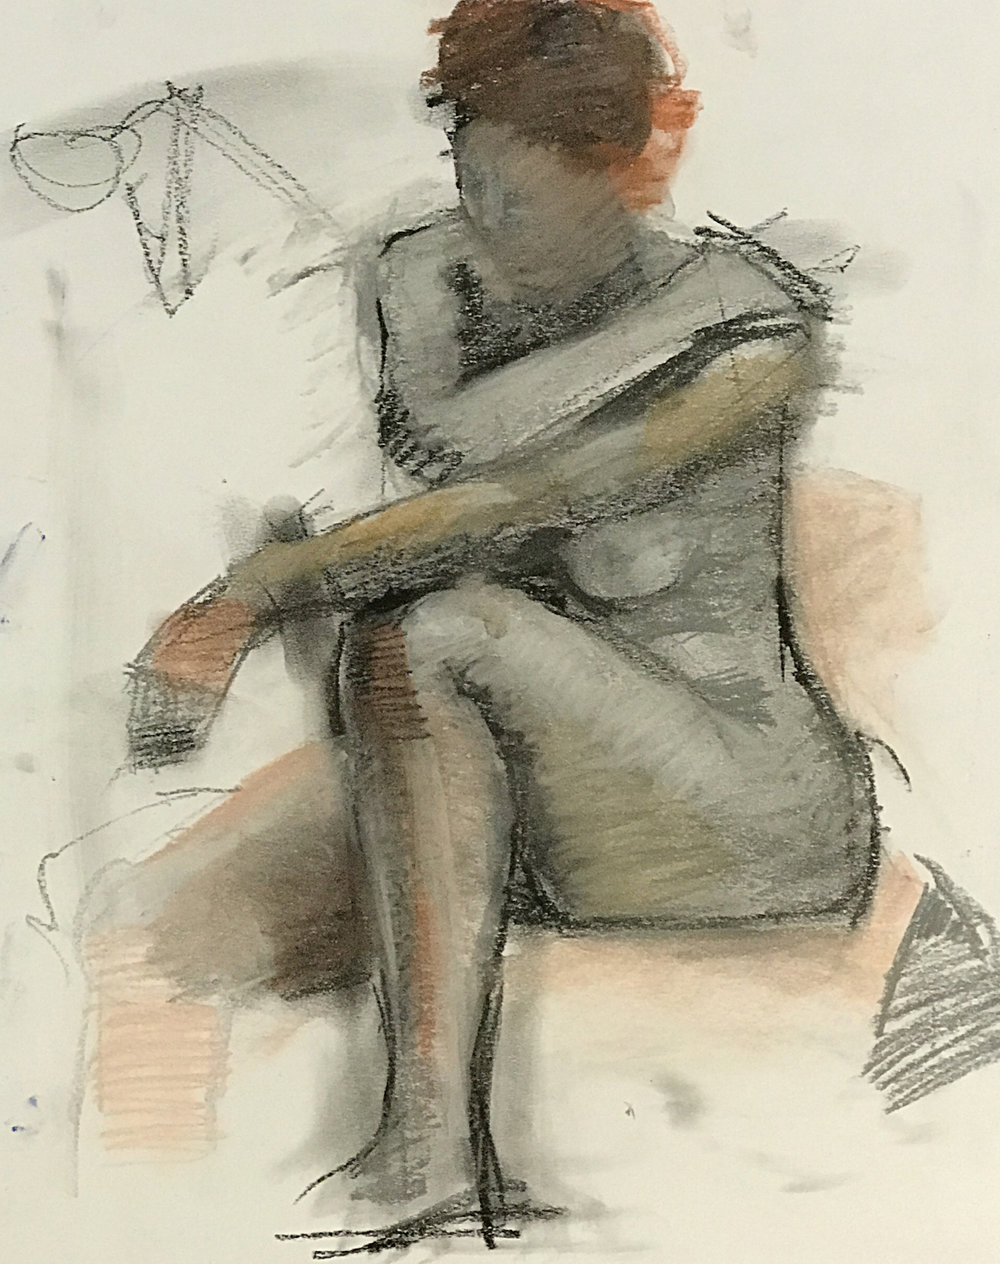 Jim Kingston. Seated Study 24 x 18 chalks on bristol